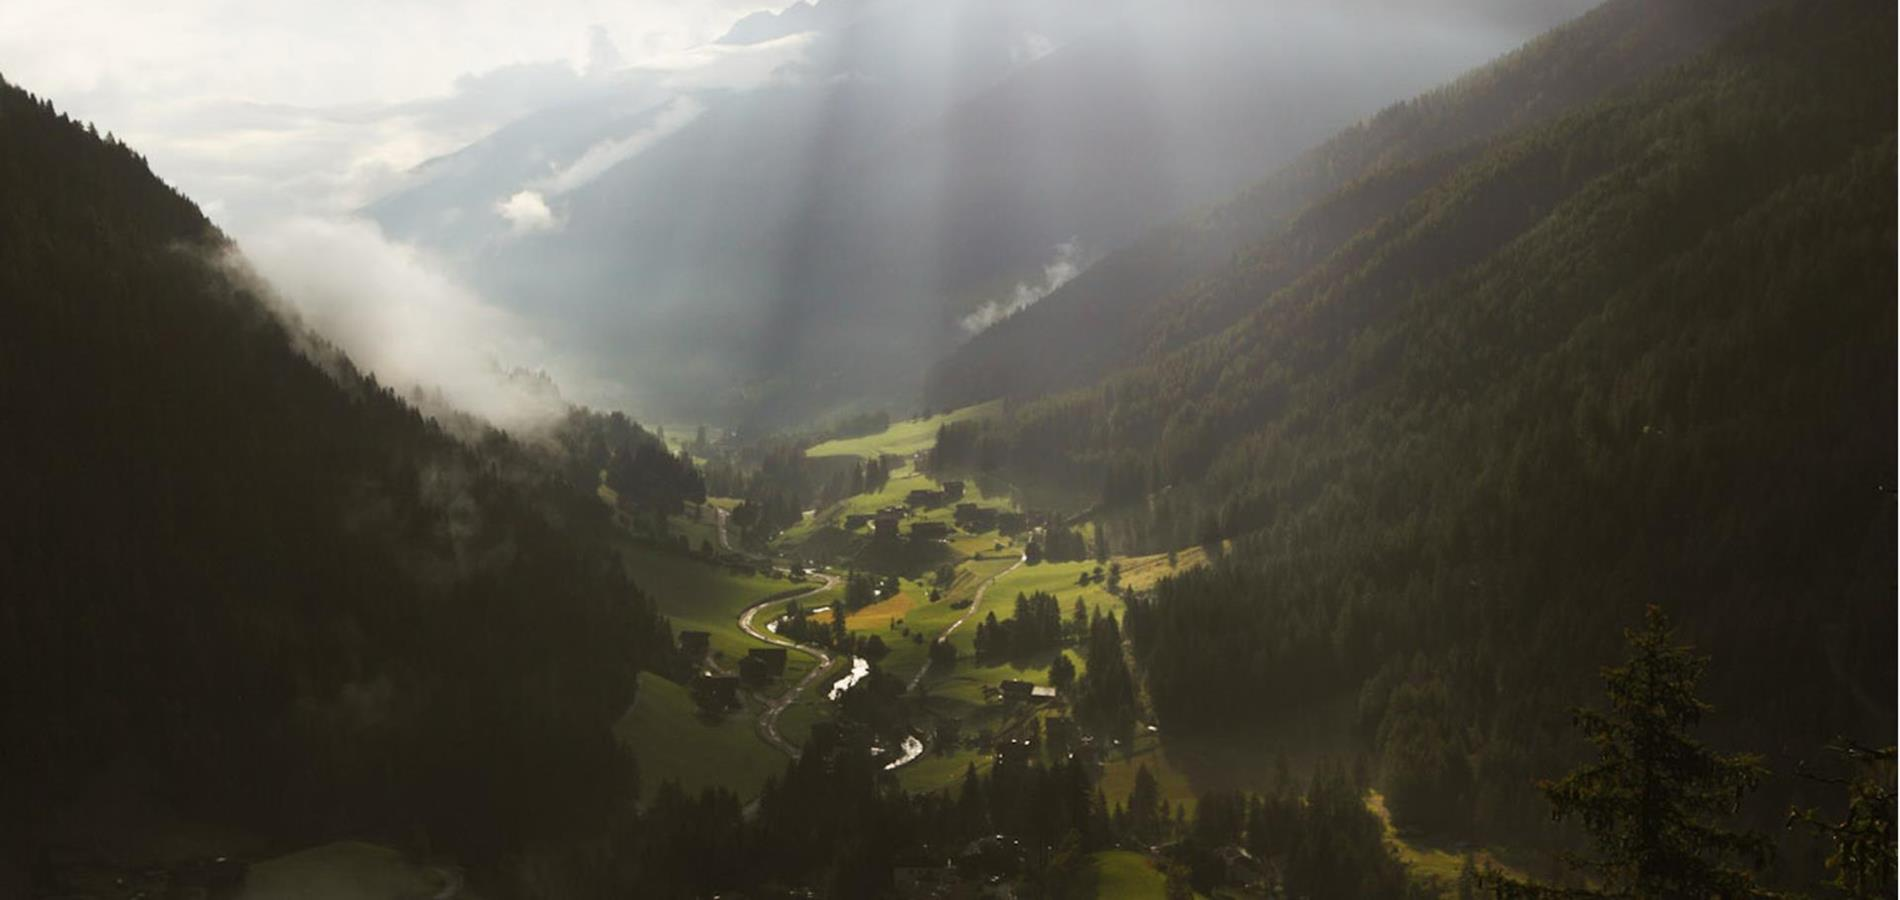 How to Reach the Ultental Valley